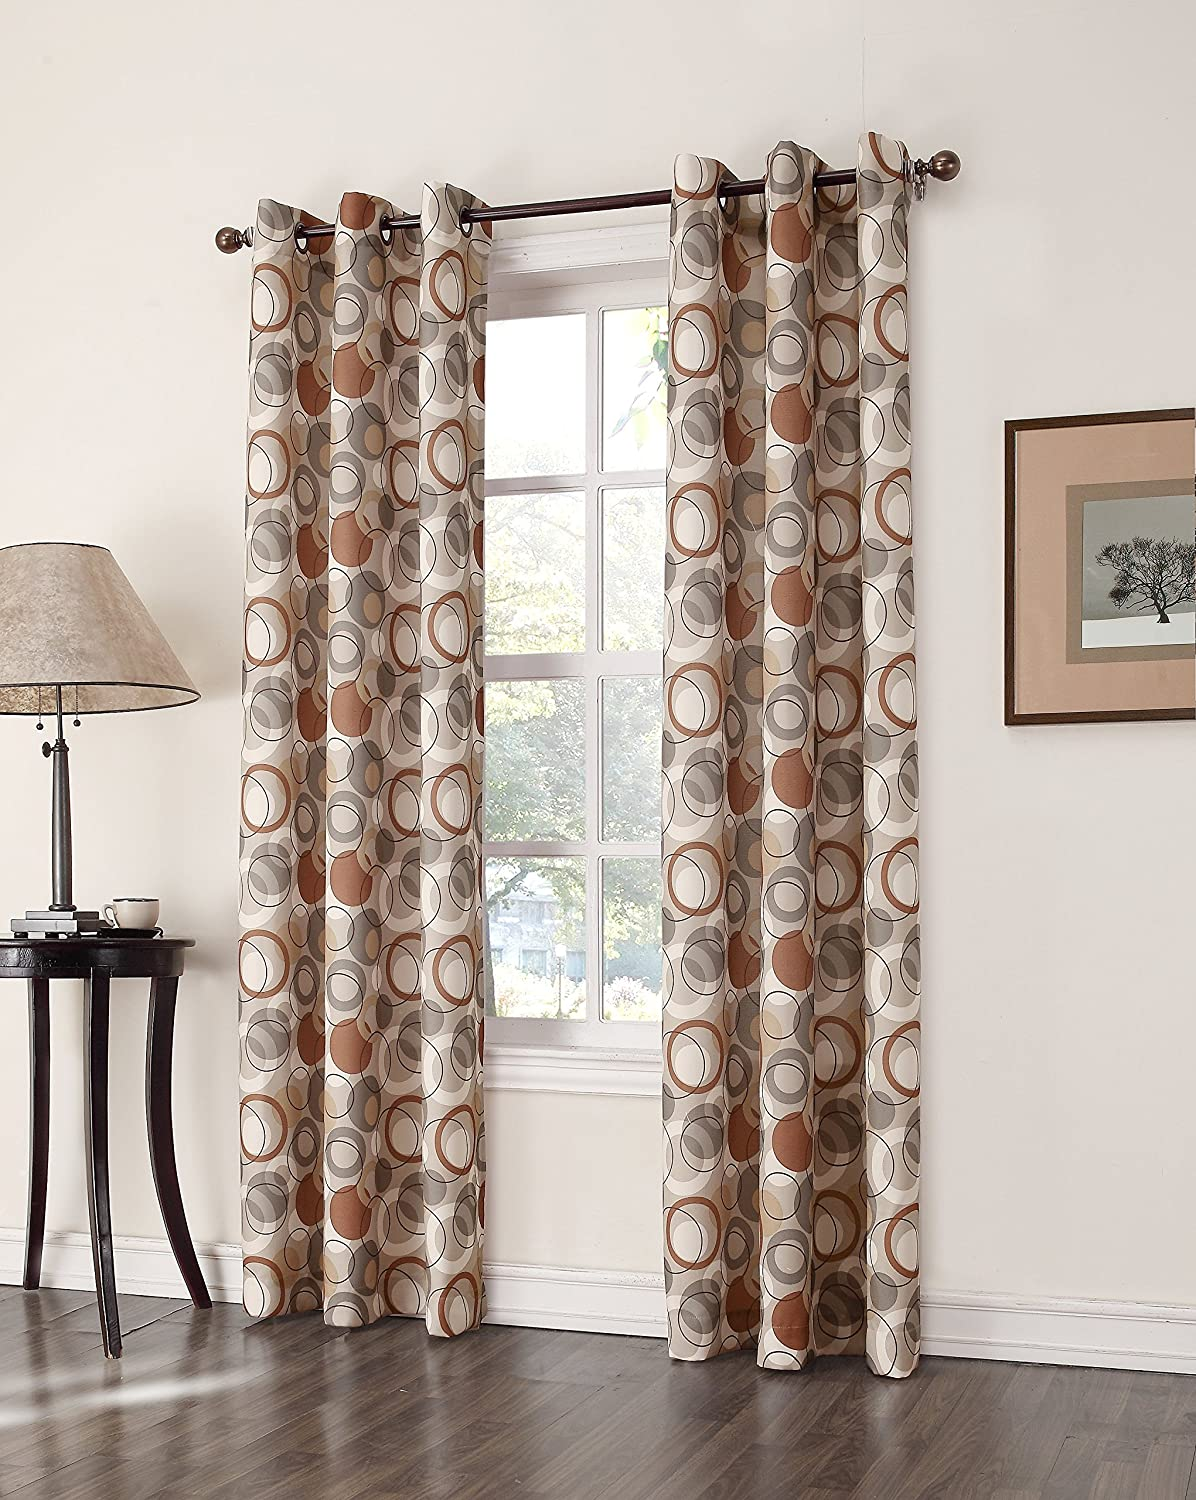 Superb 918 Celestial Grommet Curtain Panel, 48 By 84 Inch, Taupe: Home U0026 Kitchen